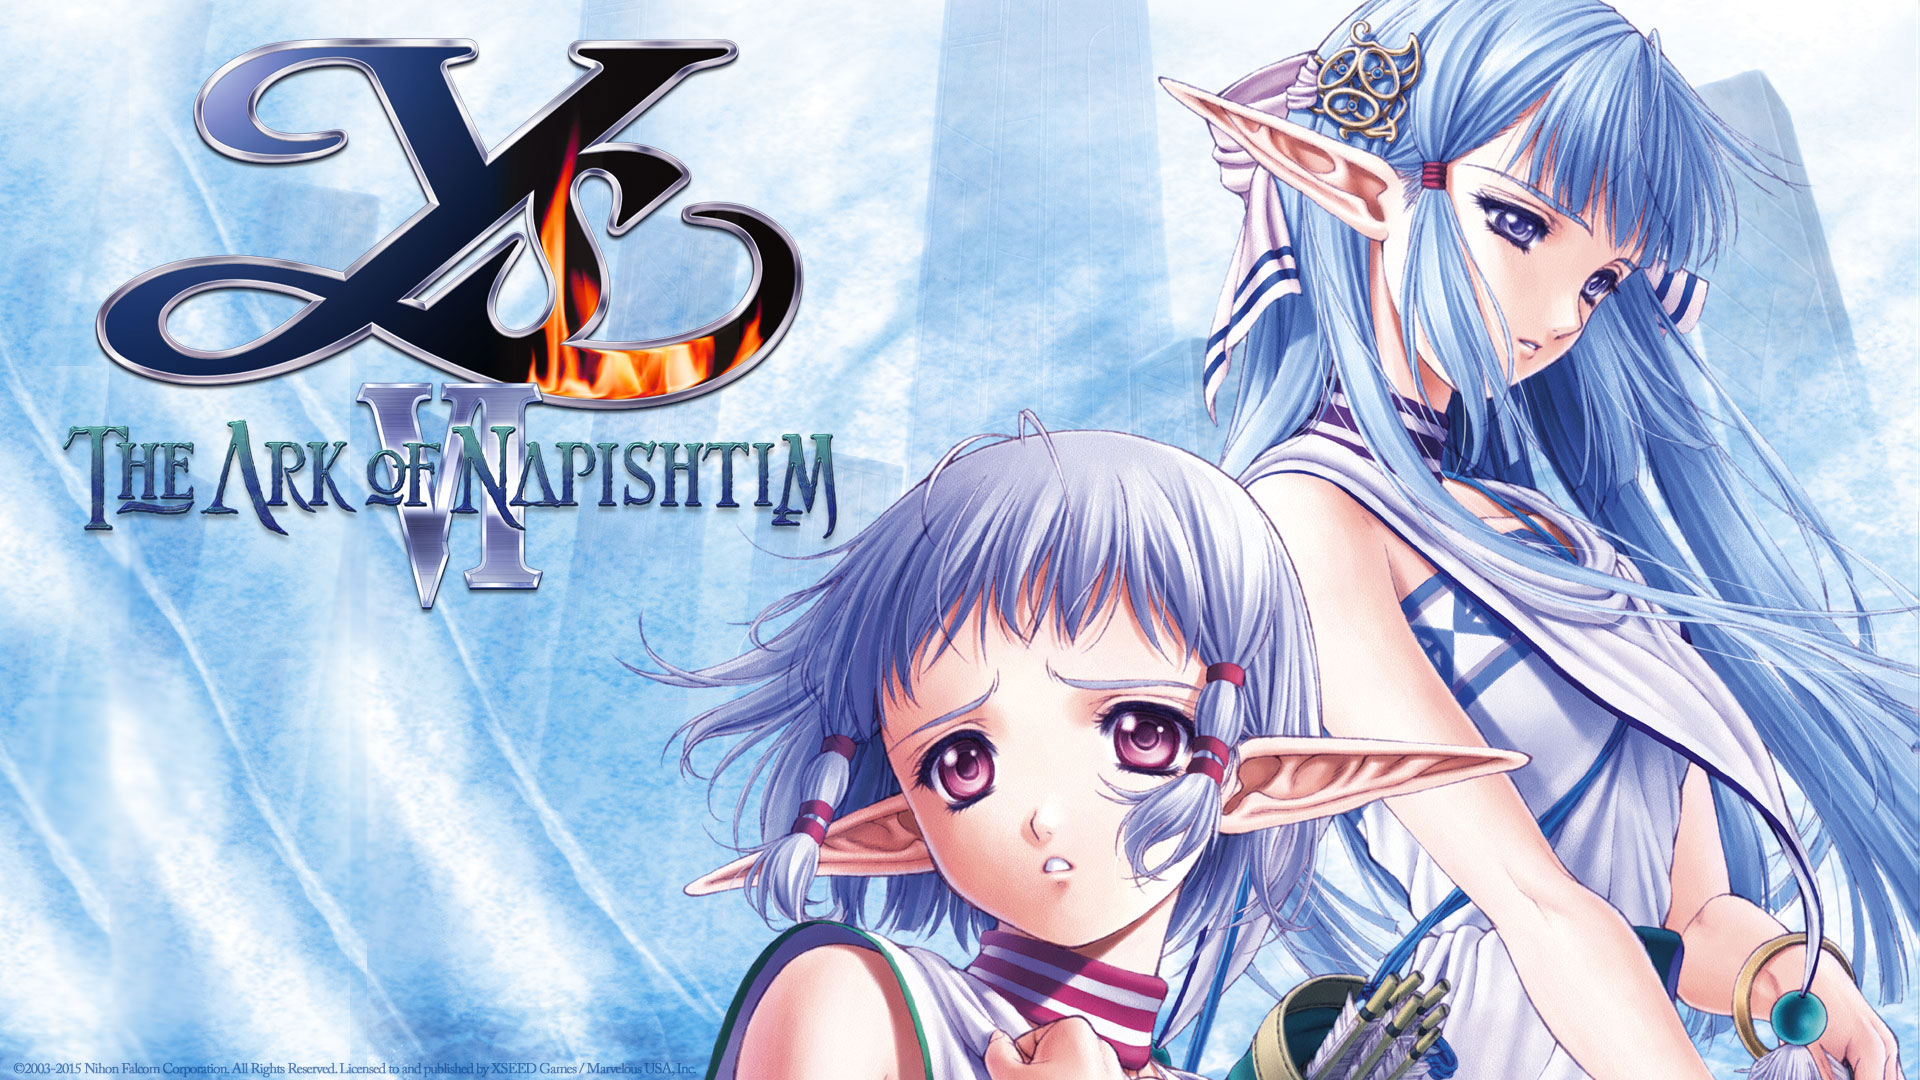 Ys VI The Ark of Napishtim Wallpaper 024